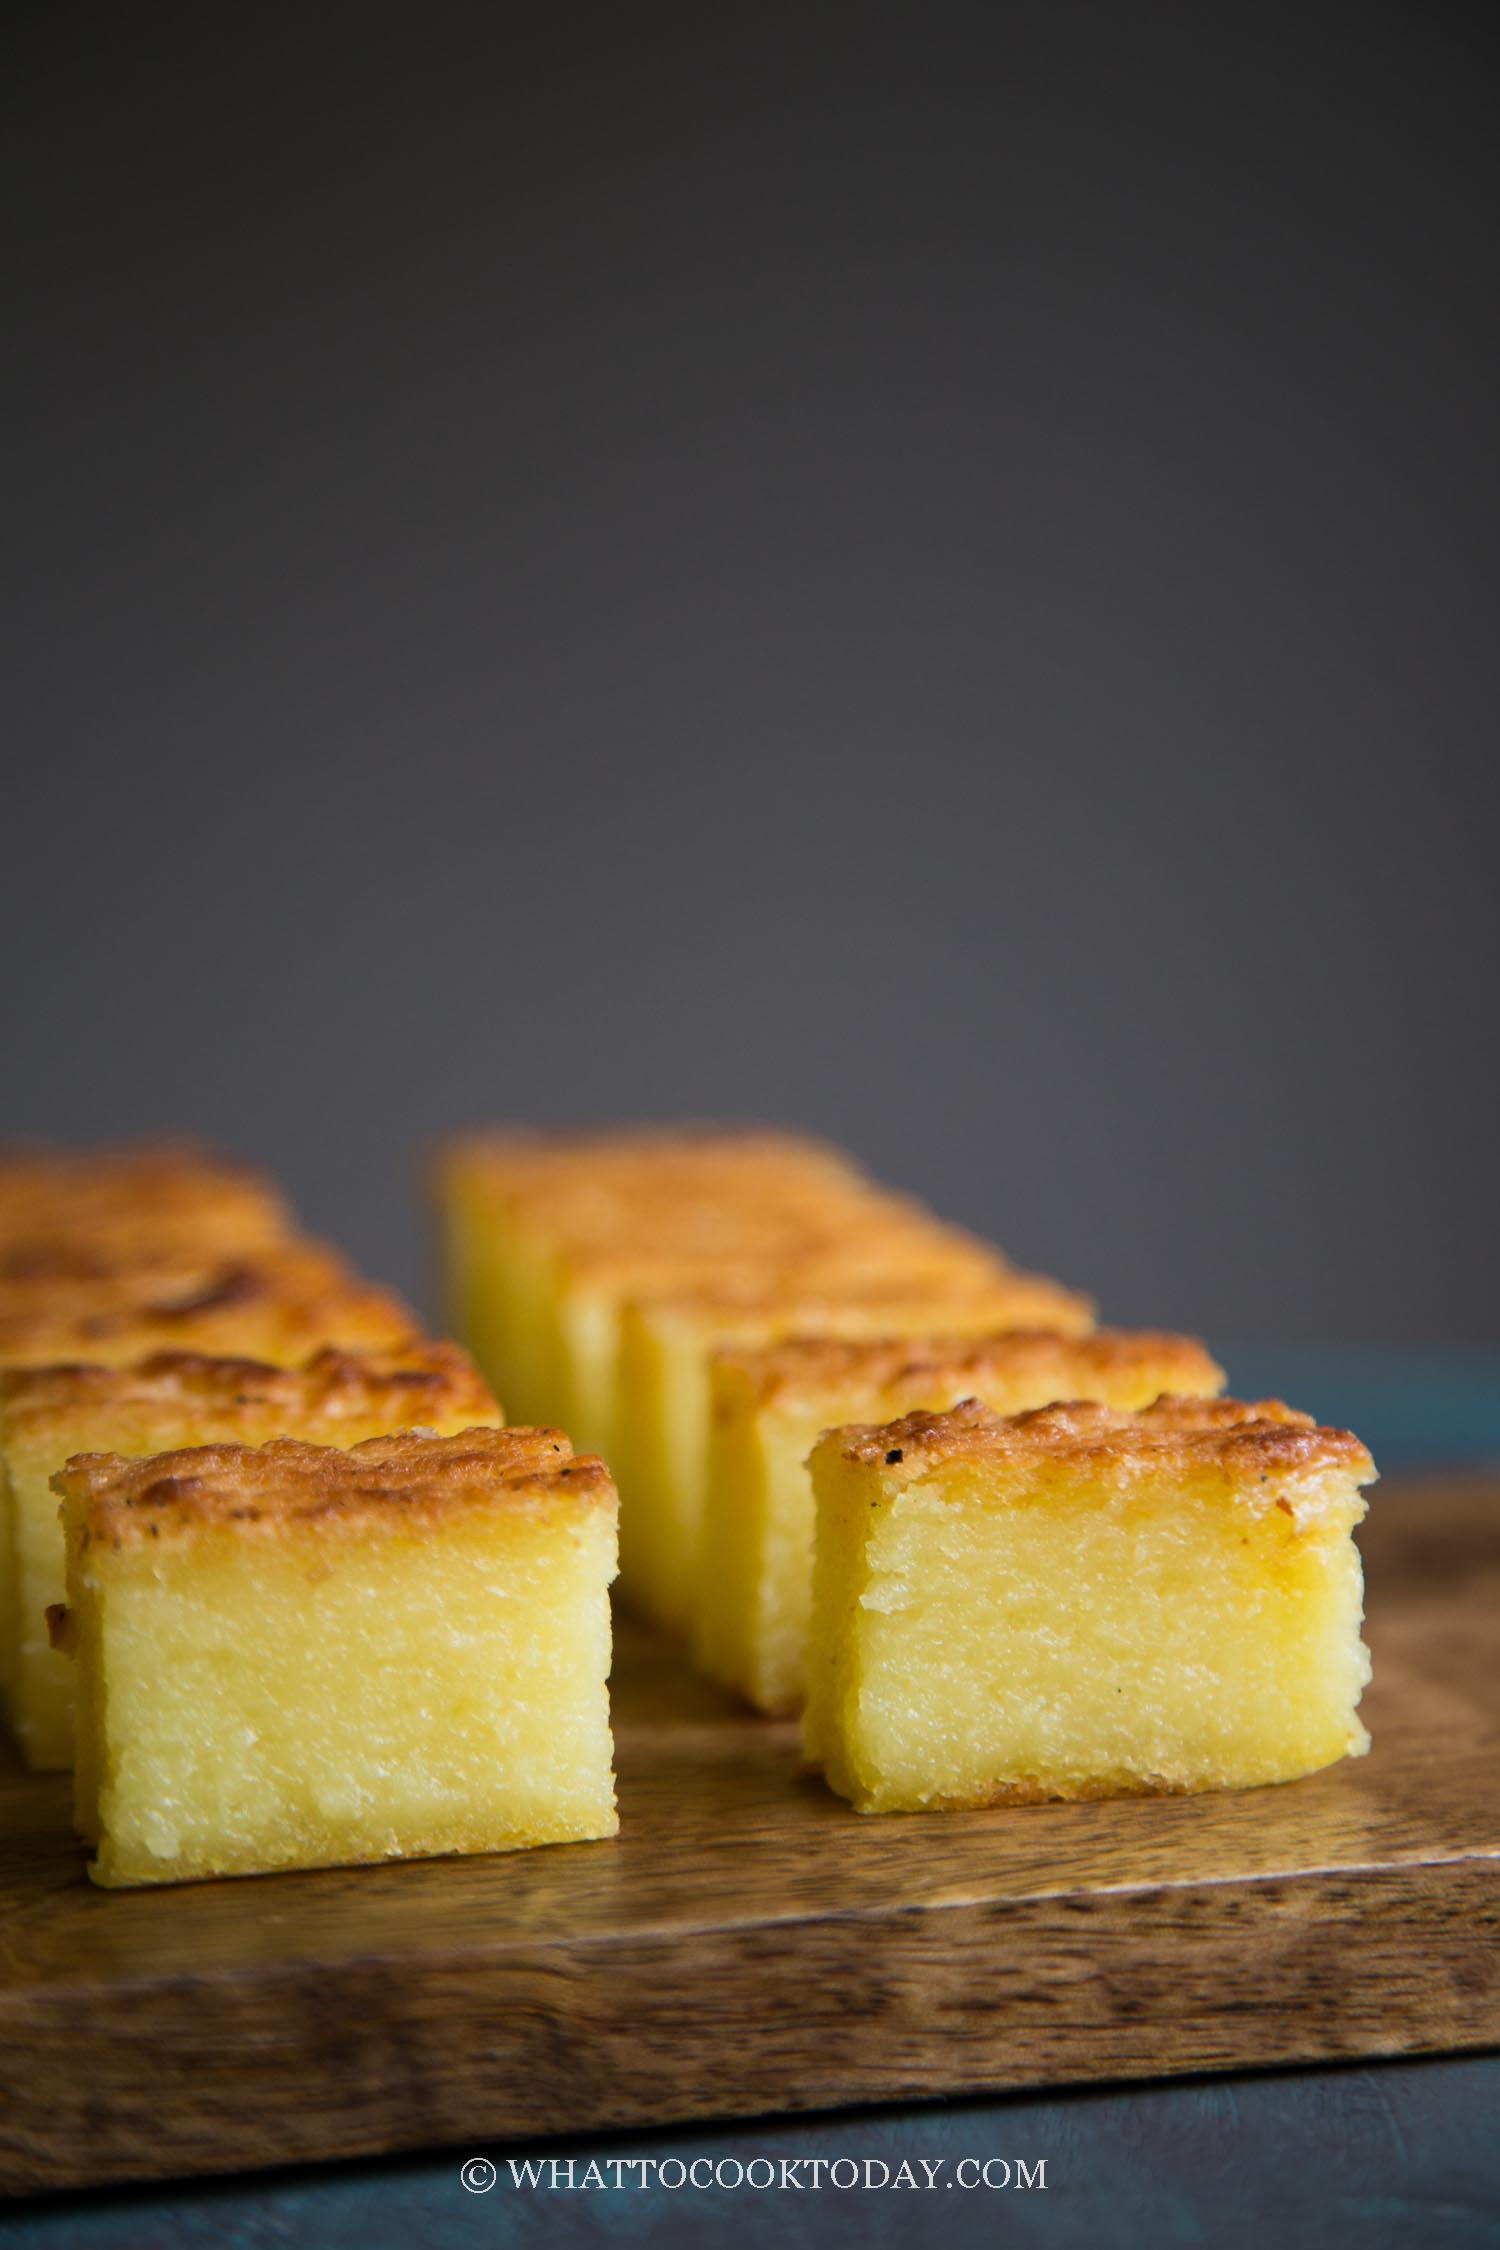 Bingka Ubi Kayu (Baked Cassava Cake)- A traditional Indonesian cake made with grated cassava and coconut milk mixture are baked to give you a cake that is naturally gluten-free, not too sweet, soft and springy at the same time.